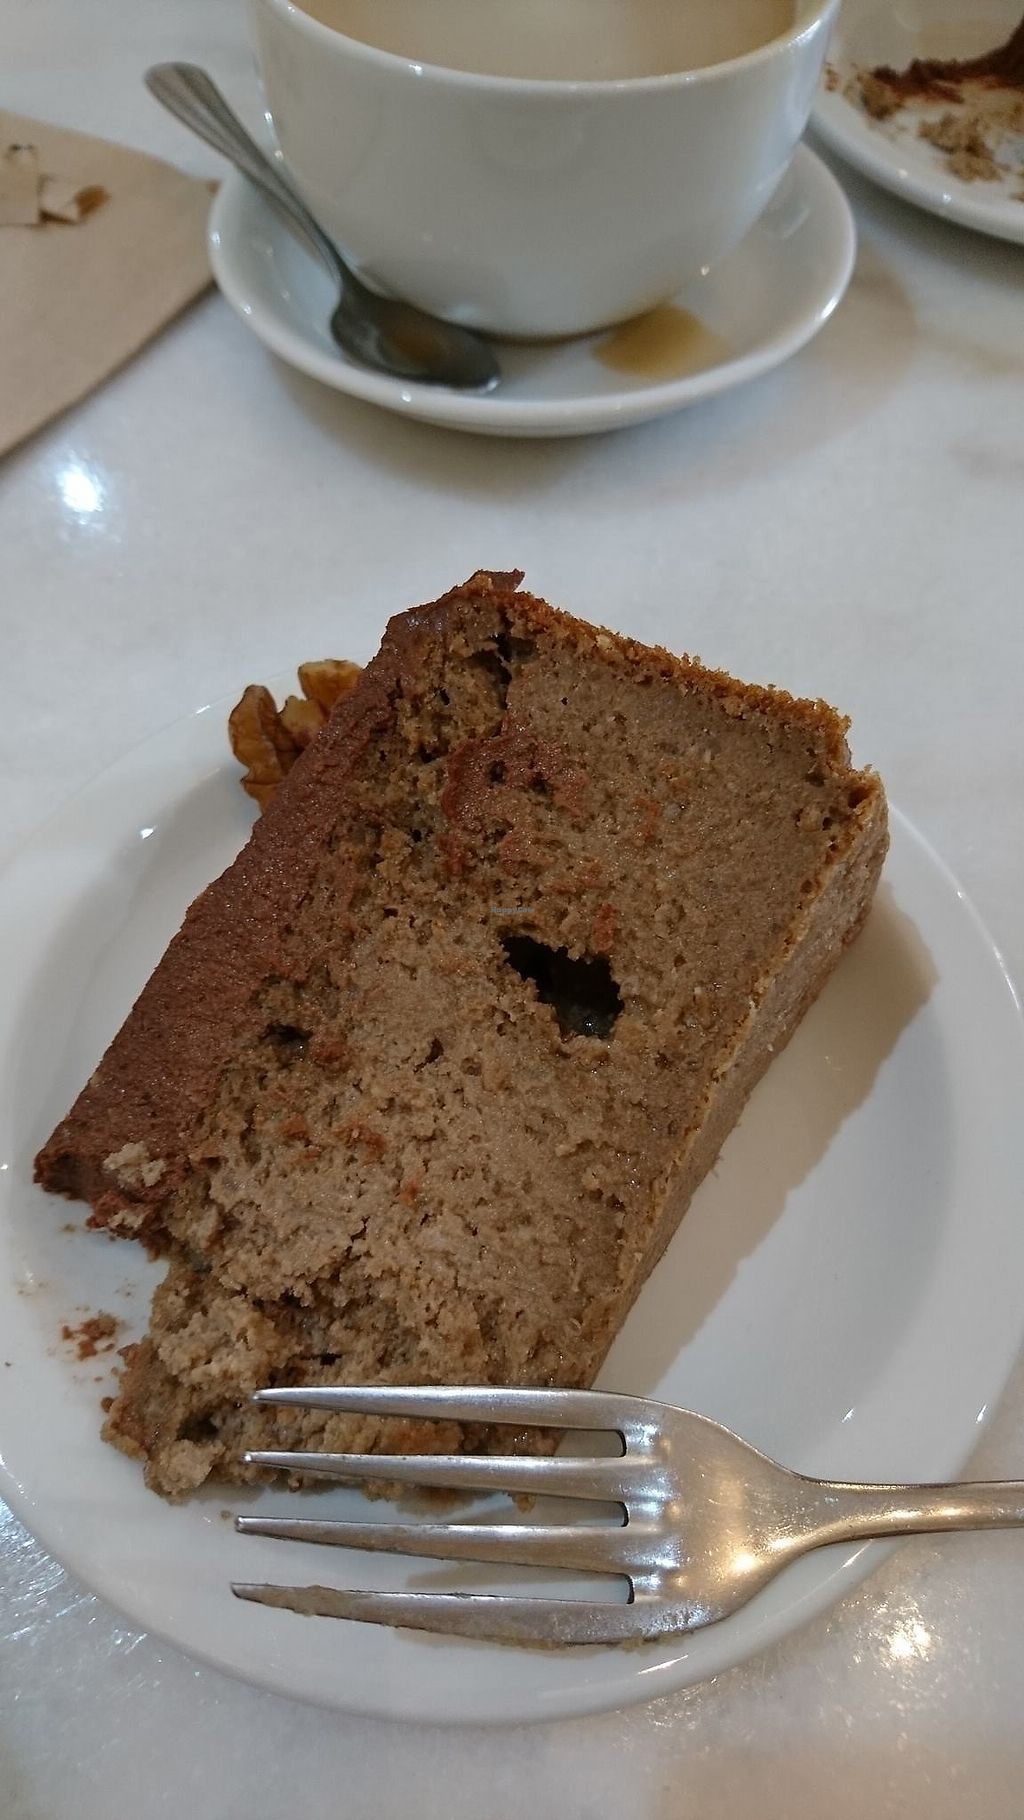 """Photo of Vinnie's Eatery  by <a href=""""/members/profile/Fay84Vegan"""">Fay84Vegan</a> <br/>Gone Off Mocha Cake from Vinnies in Cheltenham  <br/> February 22, 2018  - <a href='/contact/abuse/image/92537/362214'>Report</a>"""